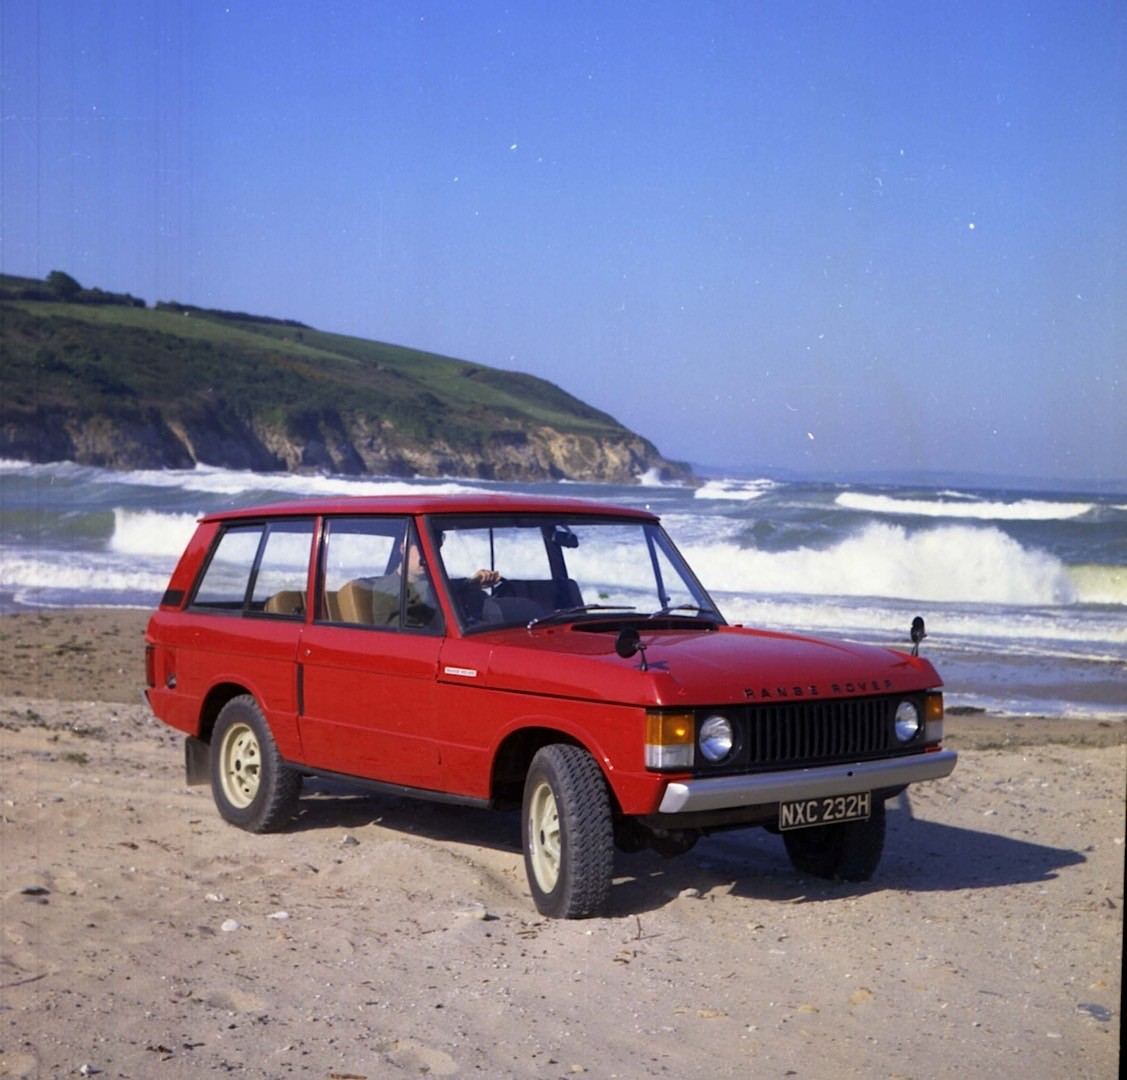 https://s1.cdn.autoevolution.com/images/news/gallery/range-rover-suv-celebrates-its-45th-birthday-today-land-rover-must-be-proud-photo-gallery_3.jpg